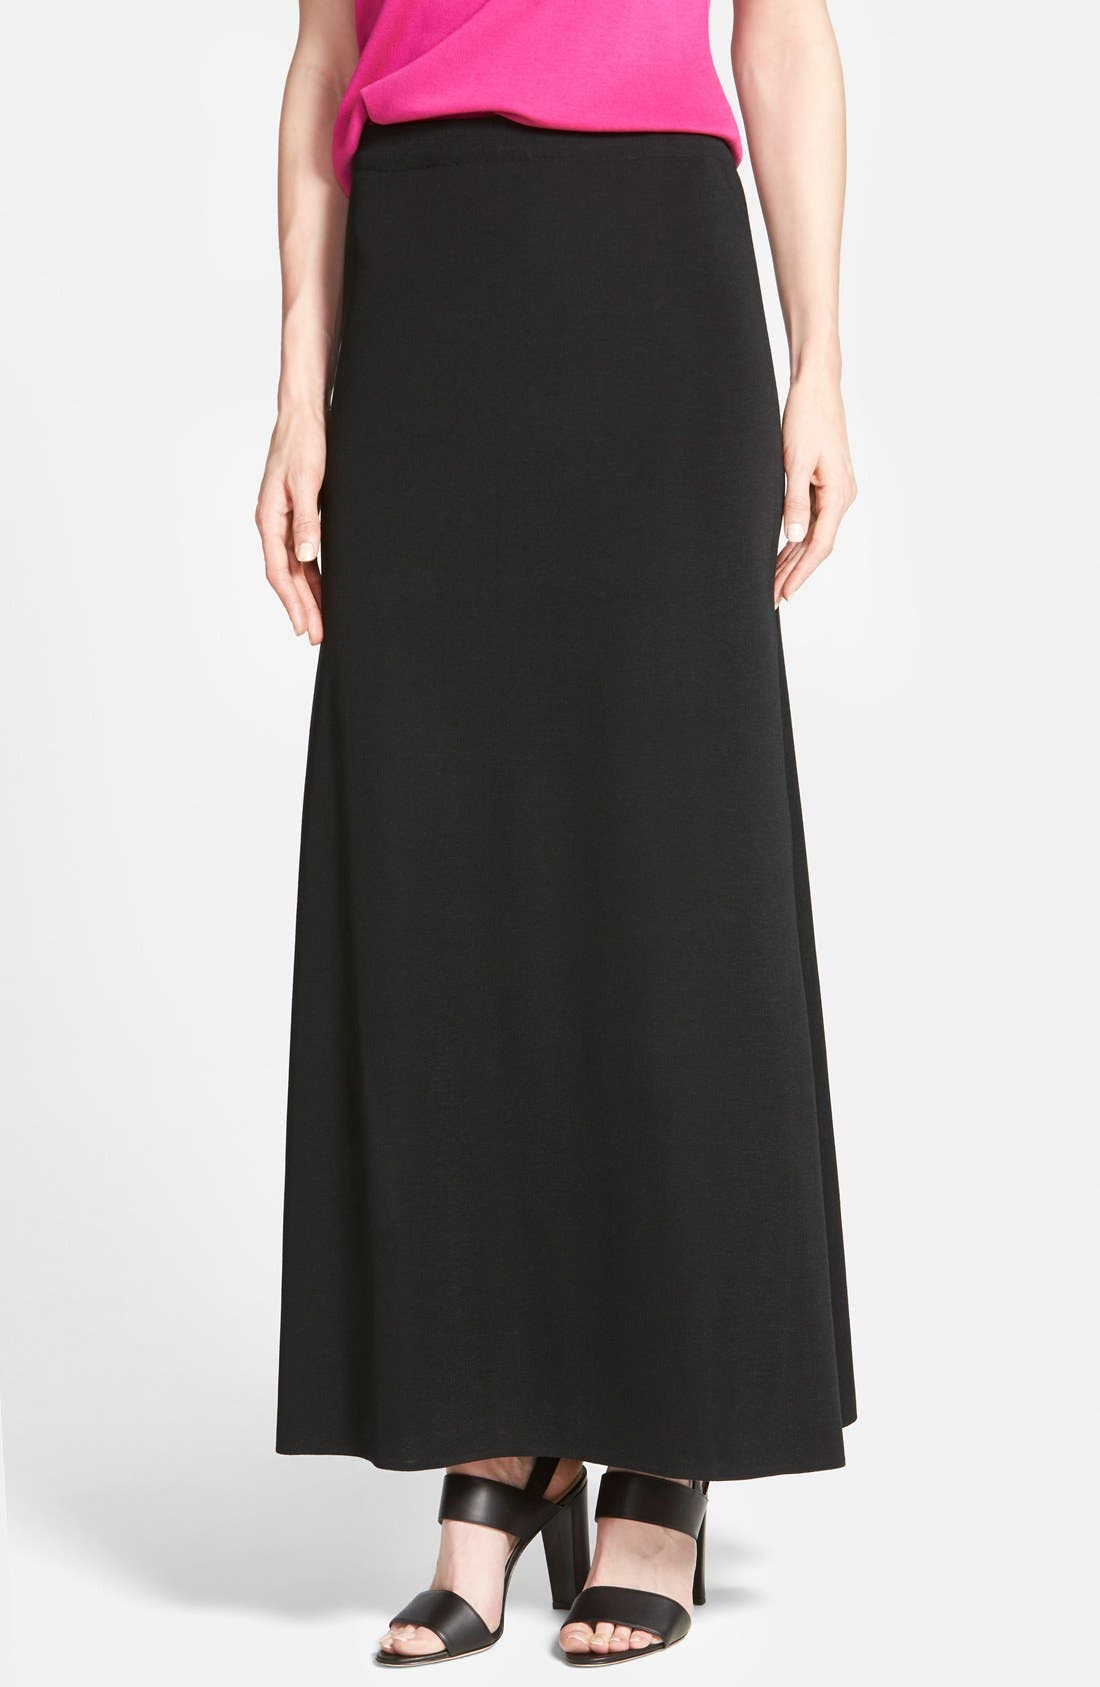 Alternate Image 1 Selected - Ming Wang A-Line Knit Maxi Skirt